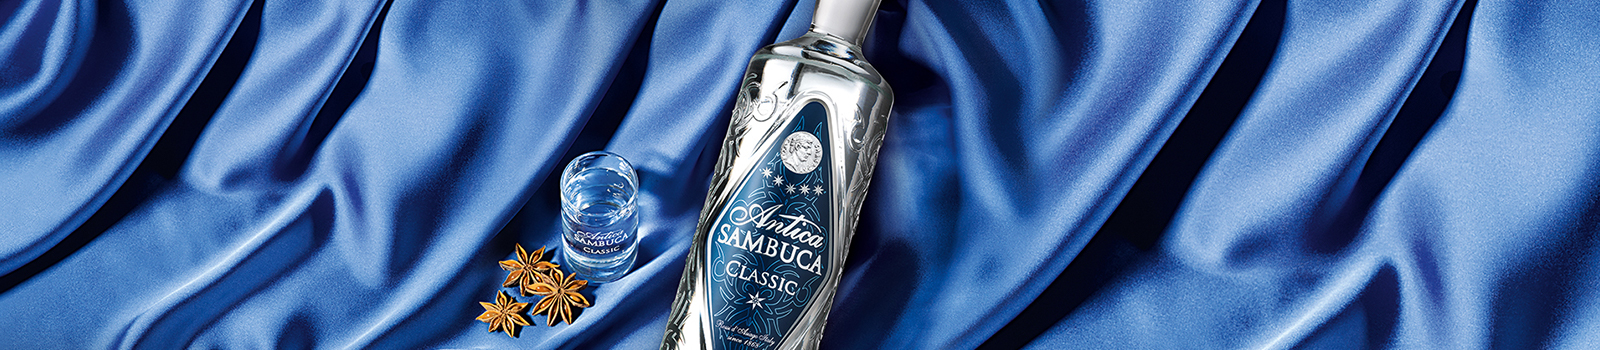 Antica Sambuca, Riunite, Trajectory Beverage Partners